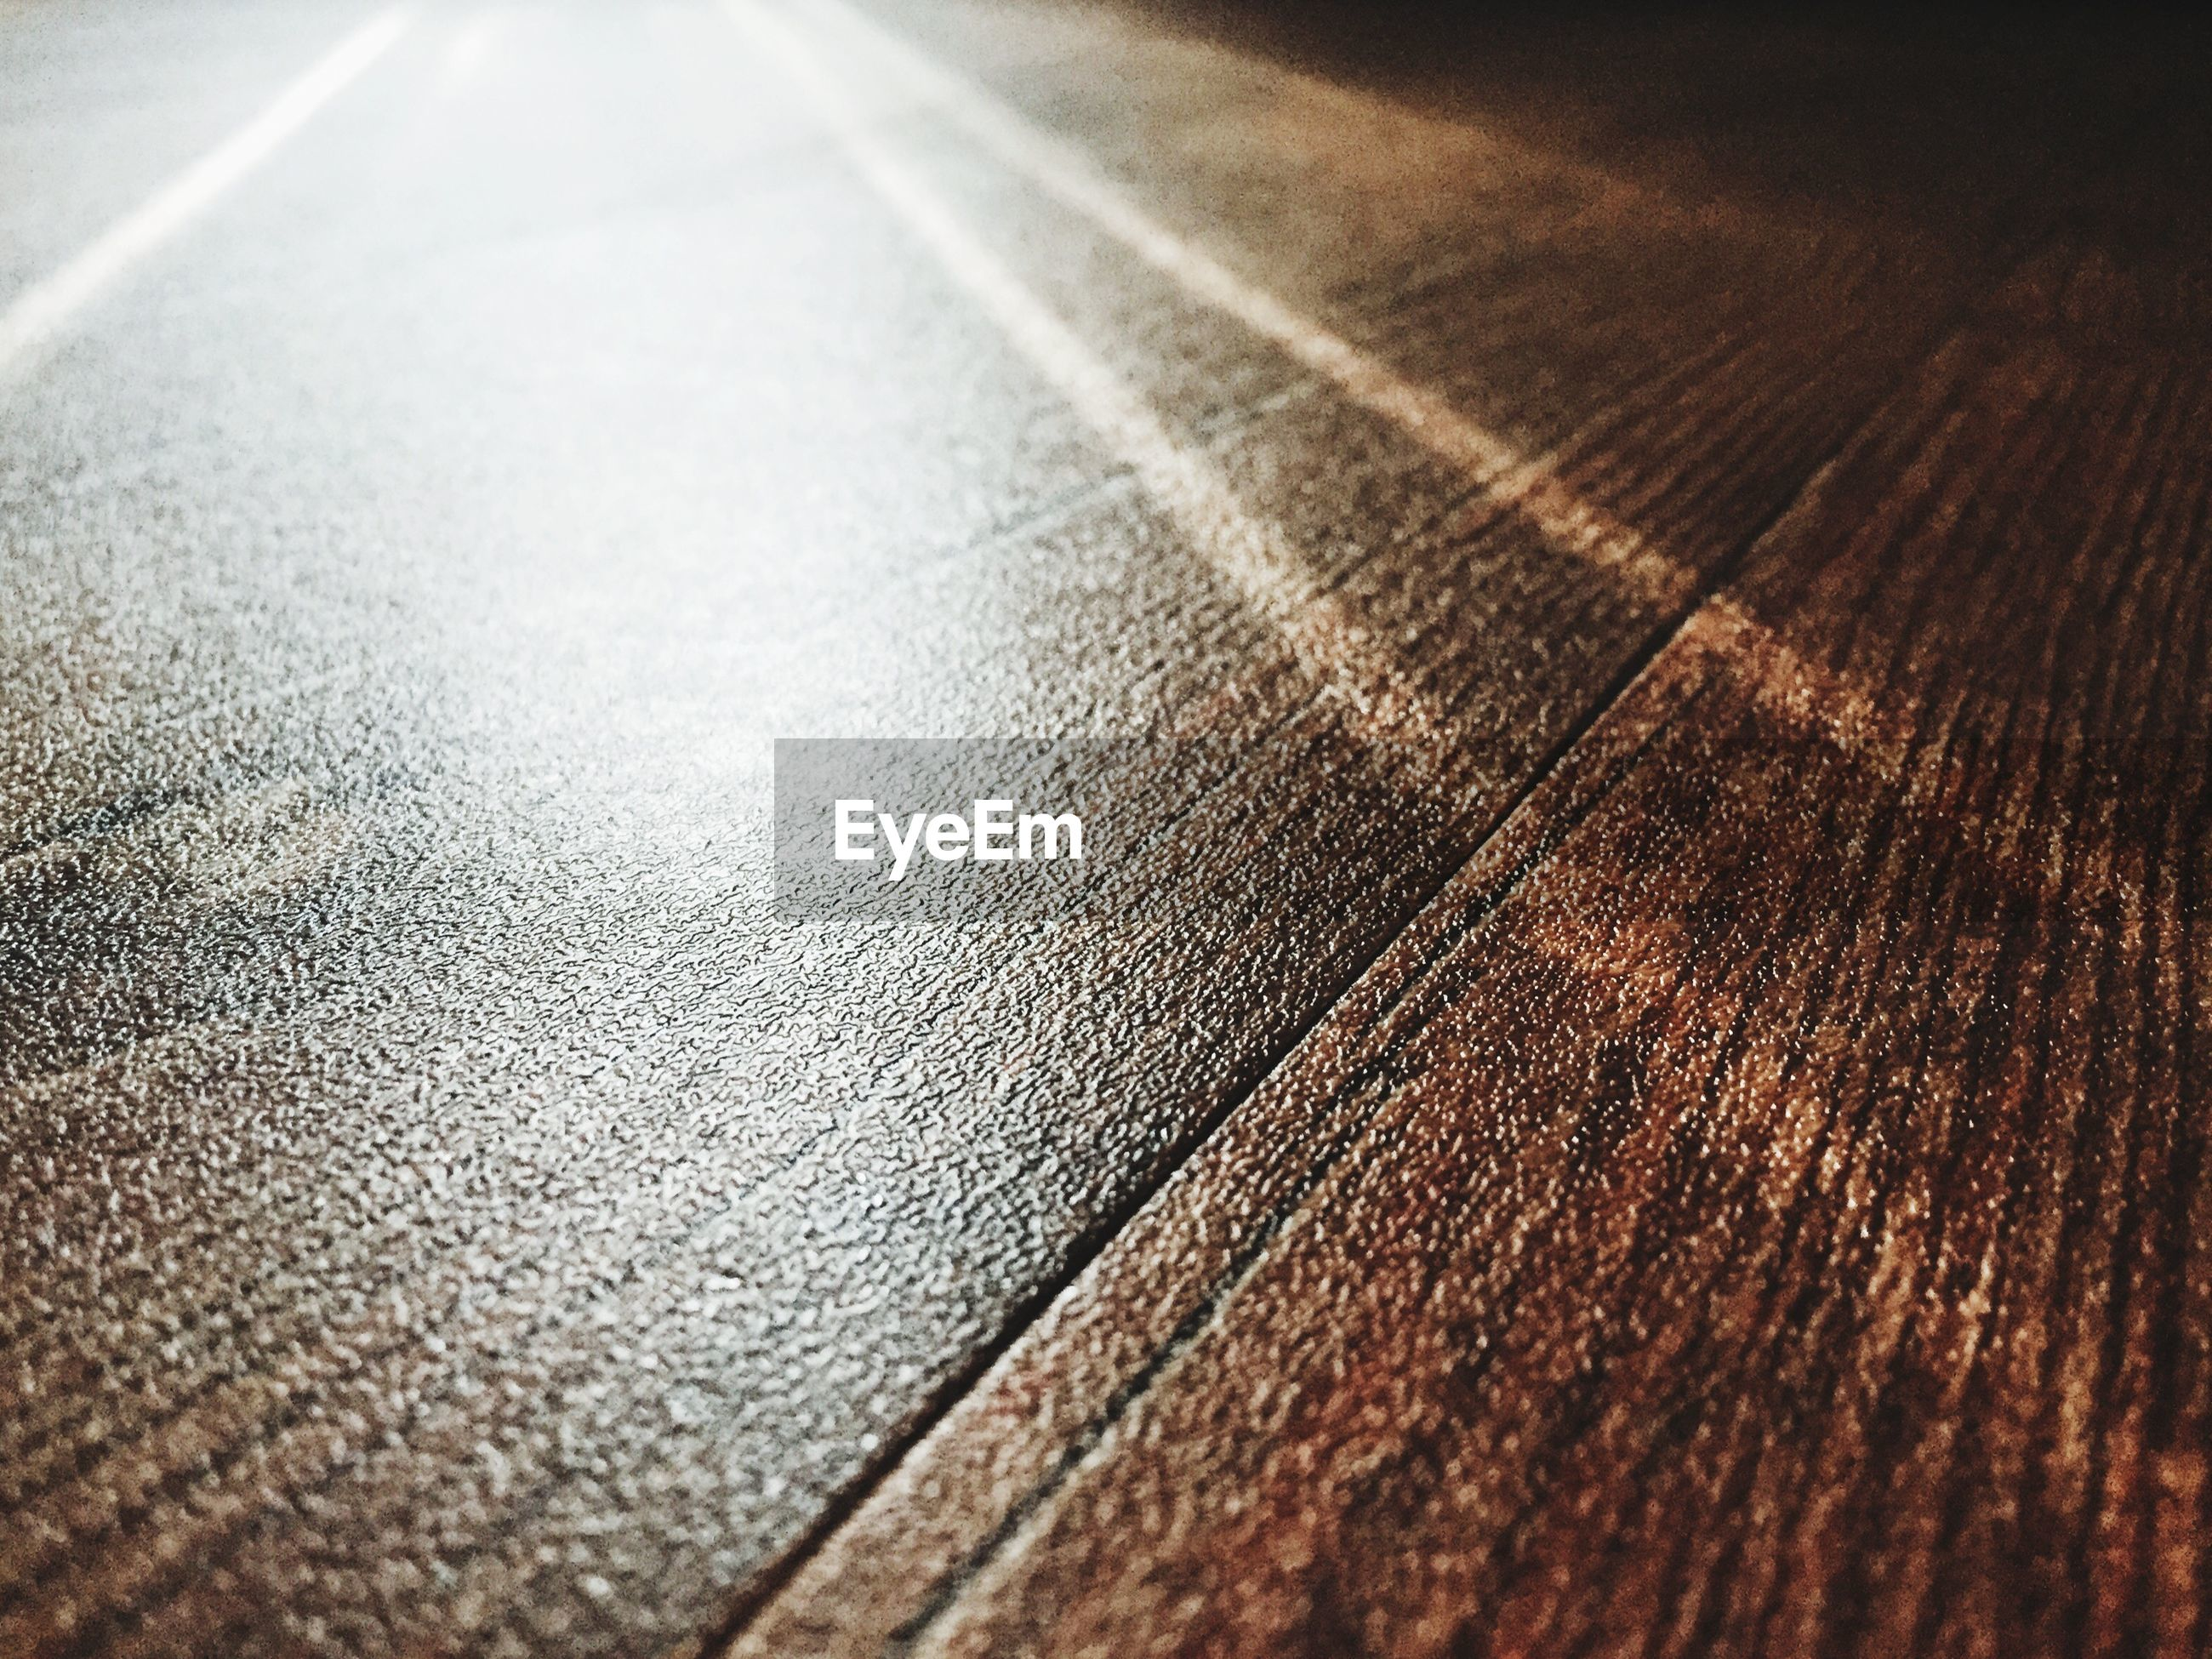 textured, pattern, full frame, close-up, indoors, backgrounds, surface level, sunlight, detail, selective focus, no people, day, part of, high angle view, metal, brown, auto post production filter, wood - material, textile